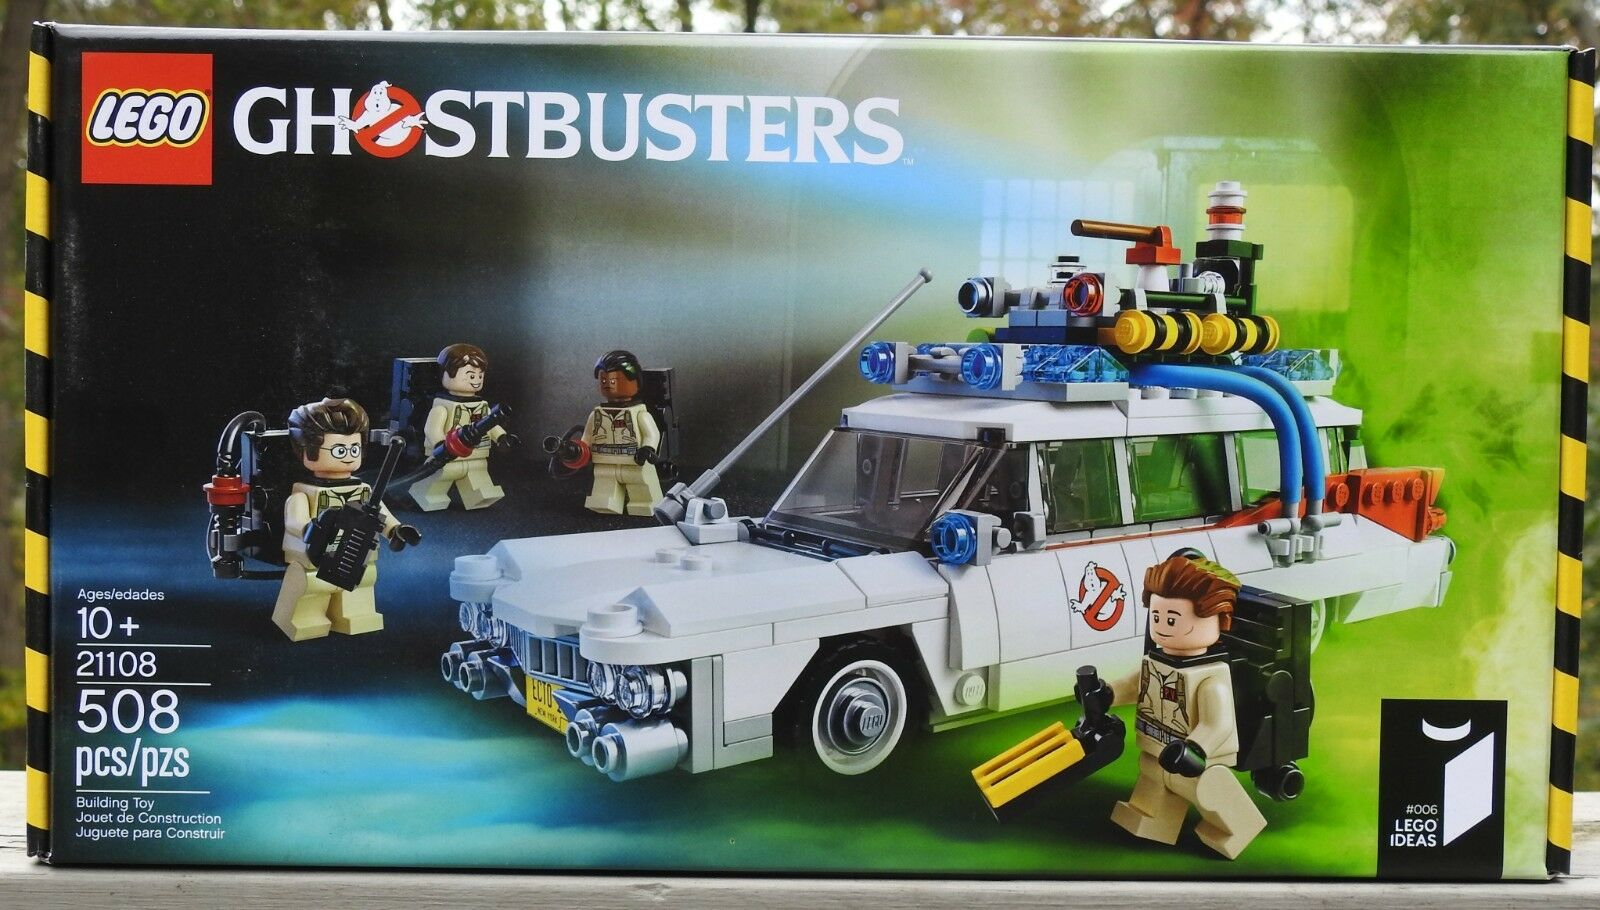 Brand NEW Sealed LEGO Ghostbusters Ecto-1 21108 - Retirosso Dated 2014